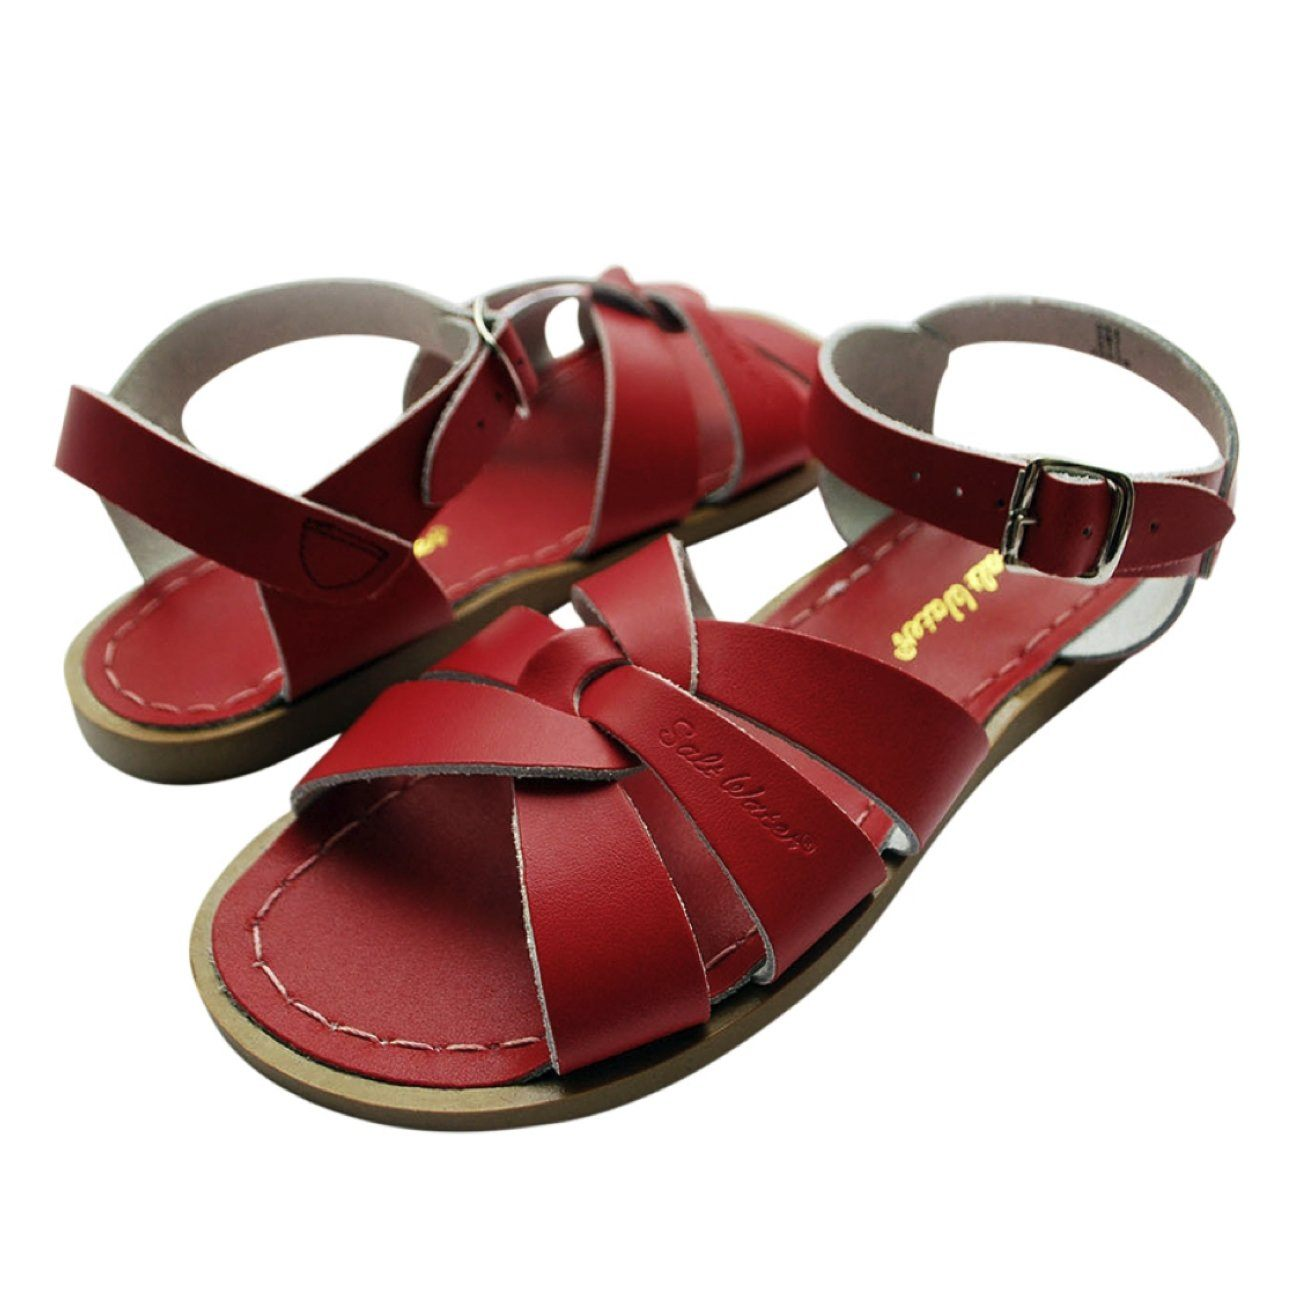 Salt Water Sandals, Original, Youth, Red Sandals Salt Water Sandals Red Y13